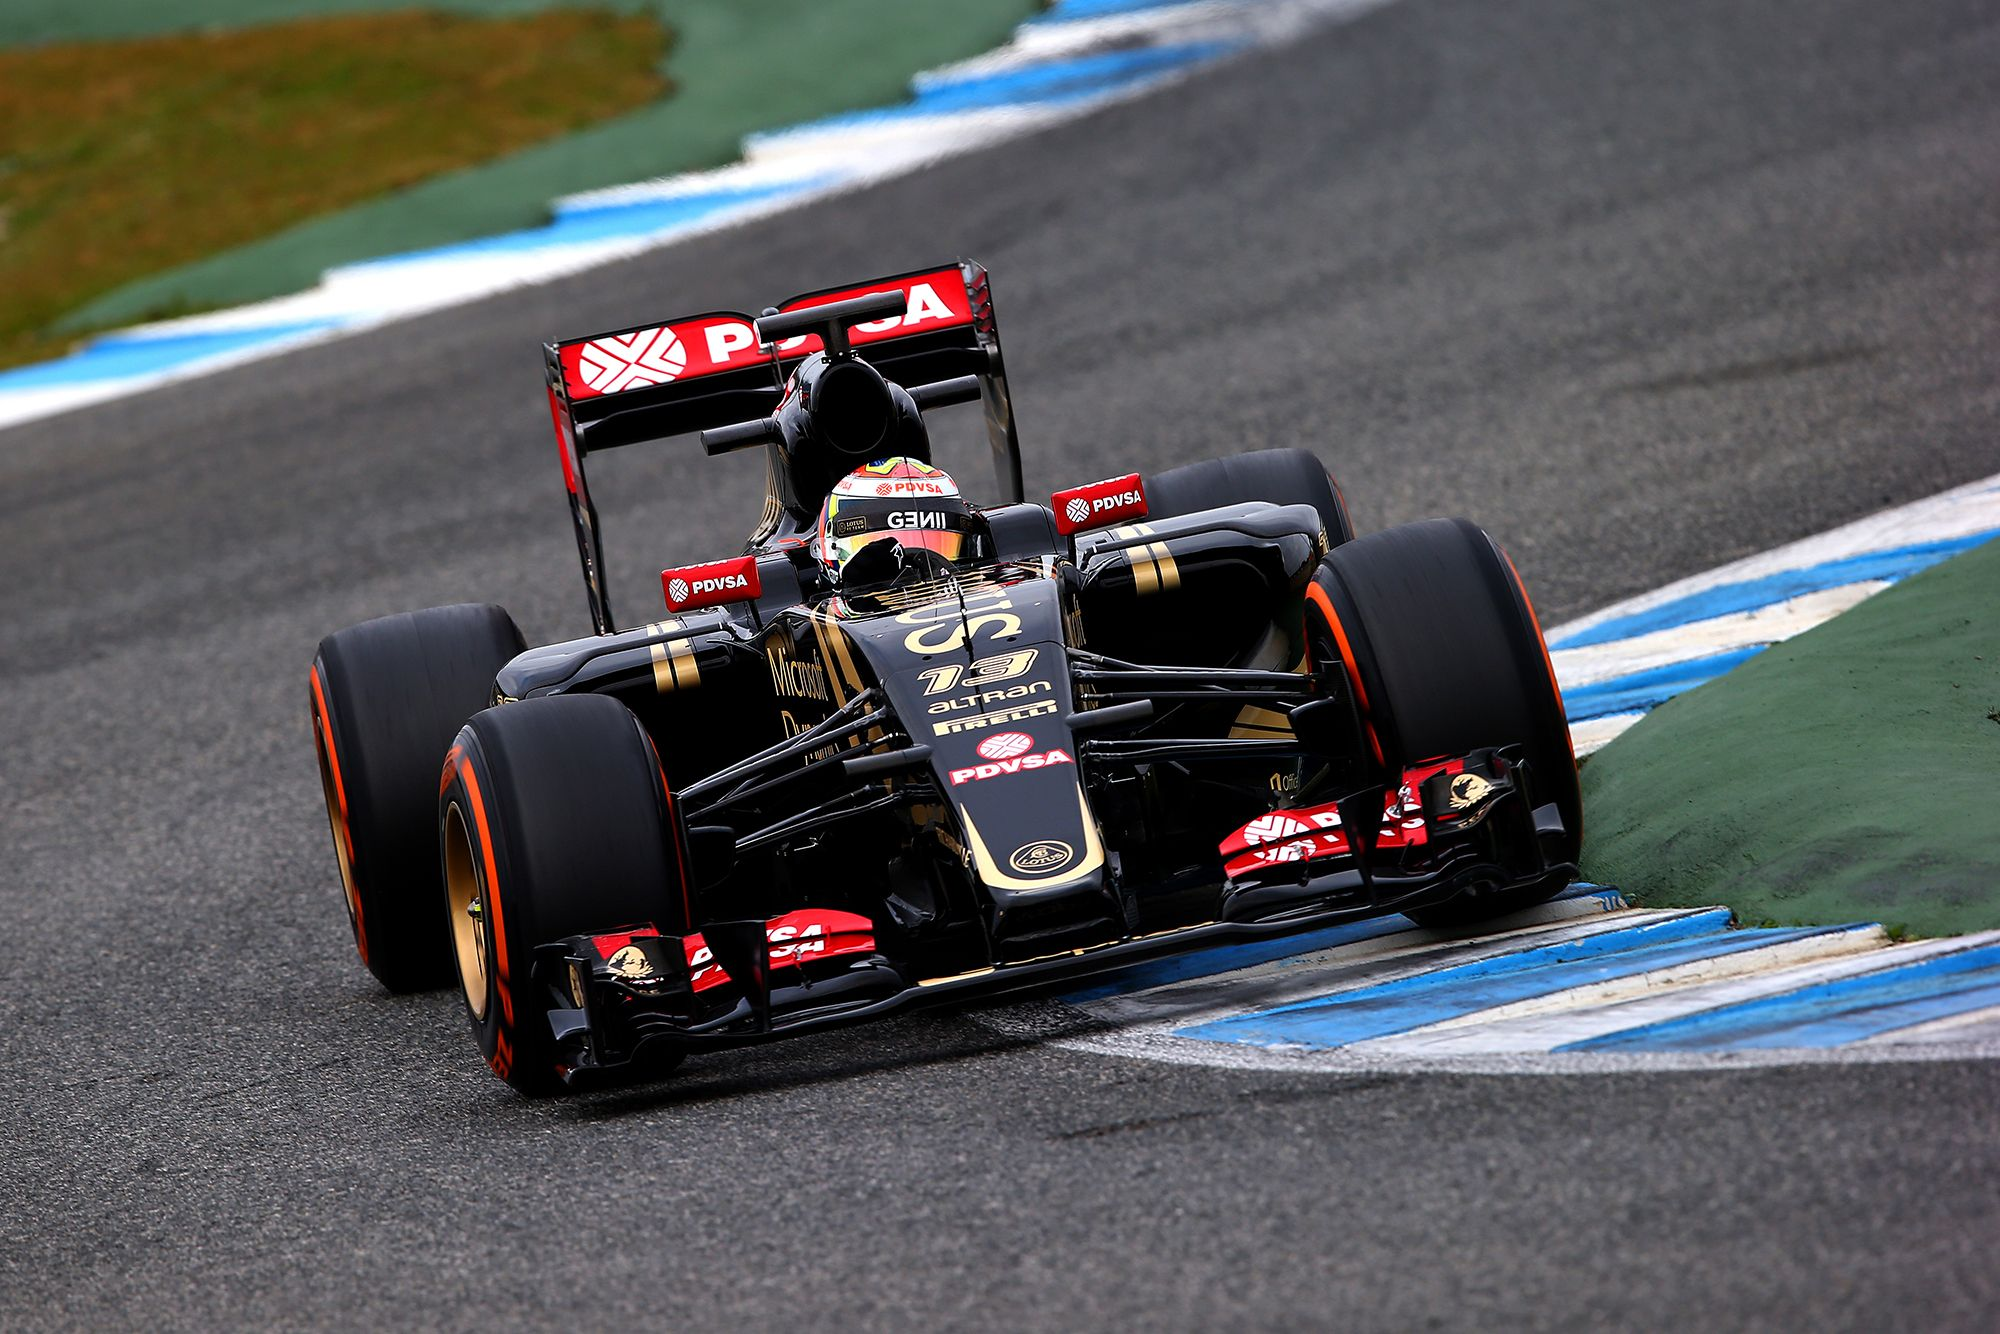 Check Out F1's New Rides as the 2015 Season Nears